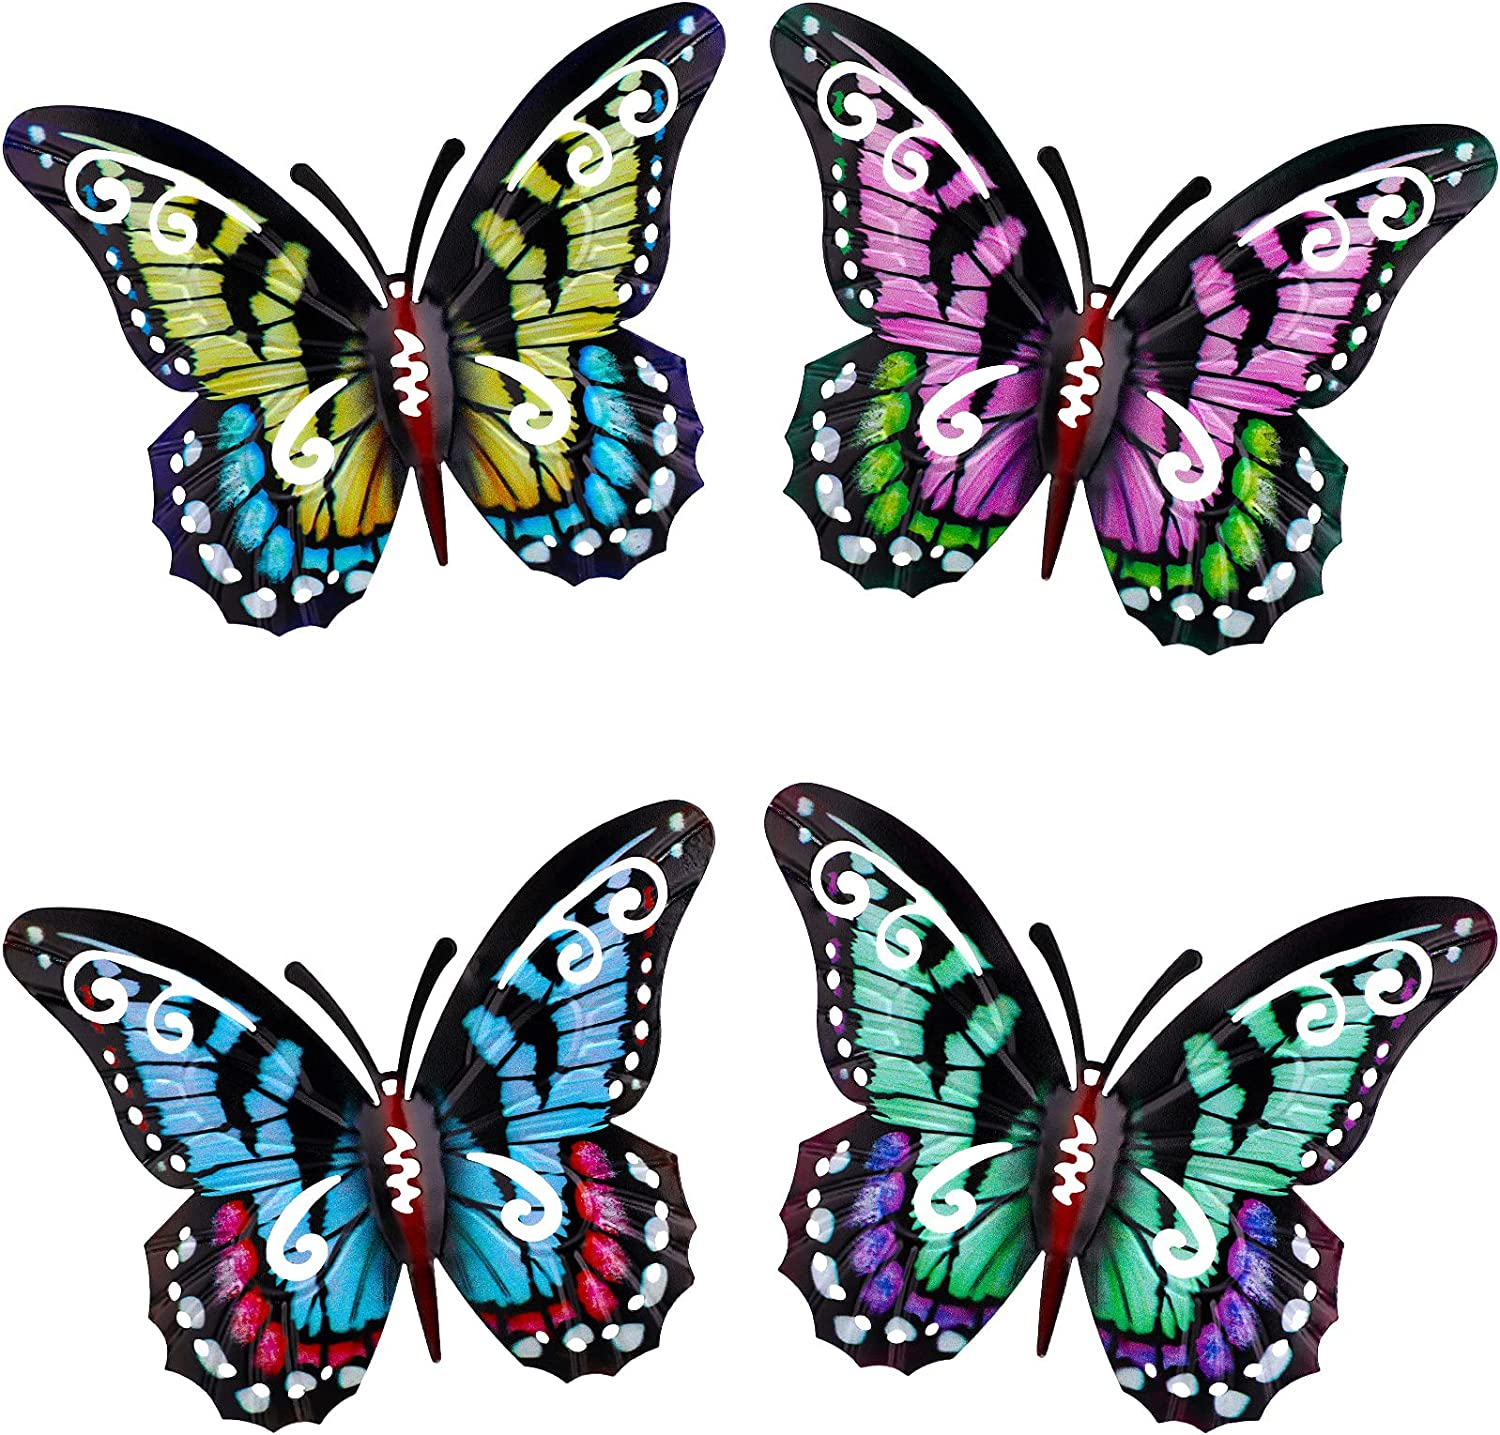 4 Pieces 3D Metal Butterfly Wall Hanging Decor, Wrought Iron Hollowed-Out Butterfly Mural, Wall Decorations for Indoor and Outdoor (Retro Style)